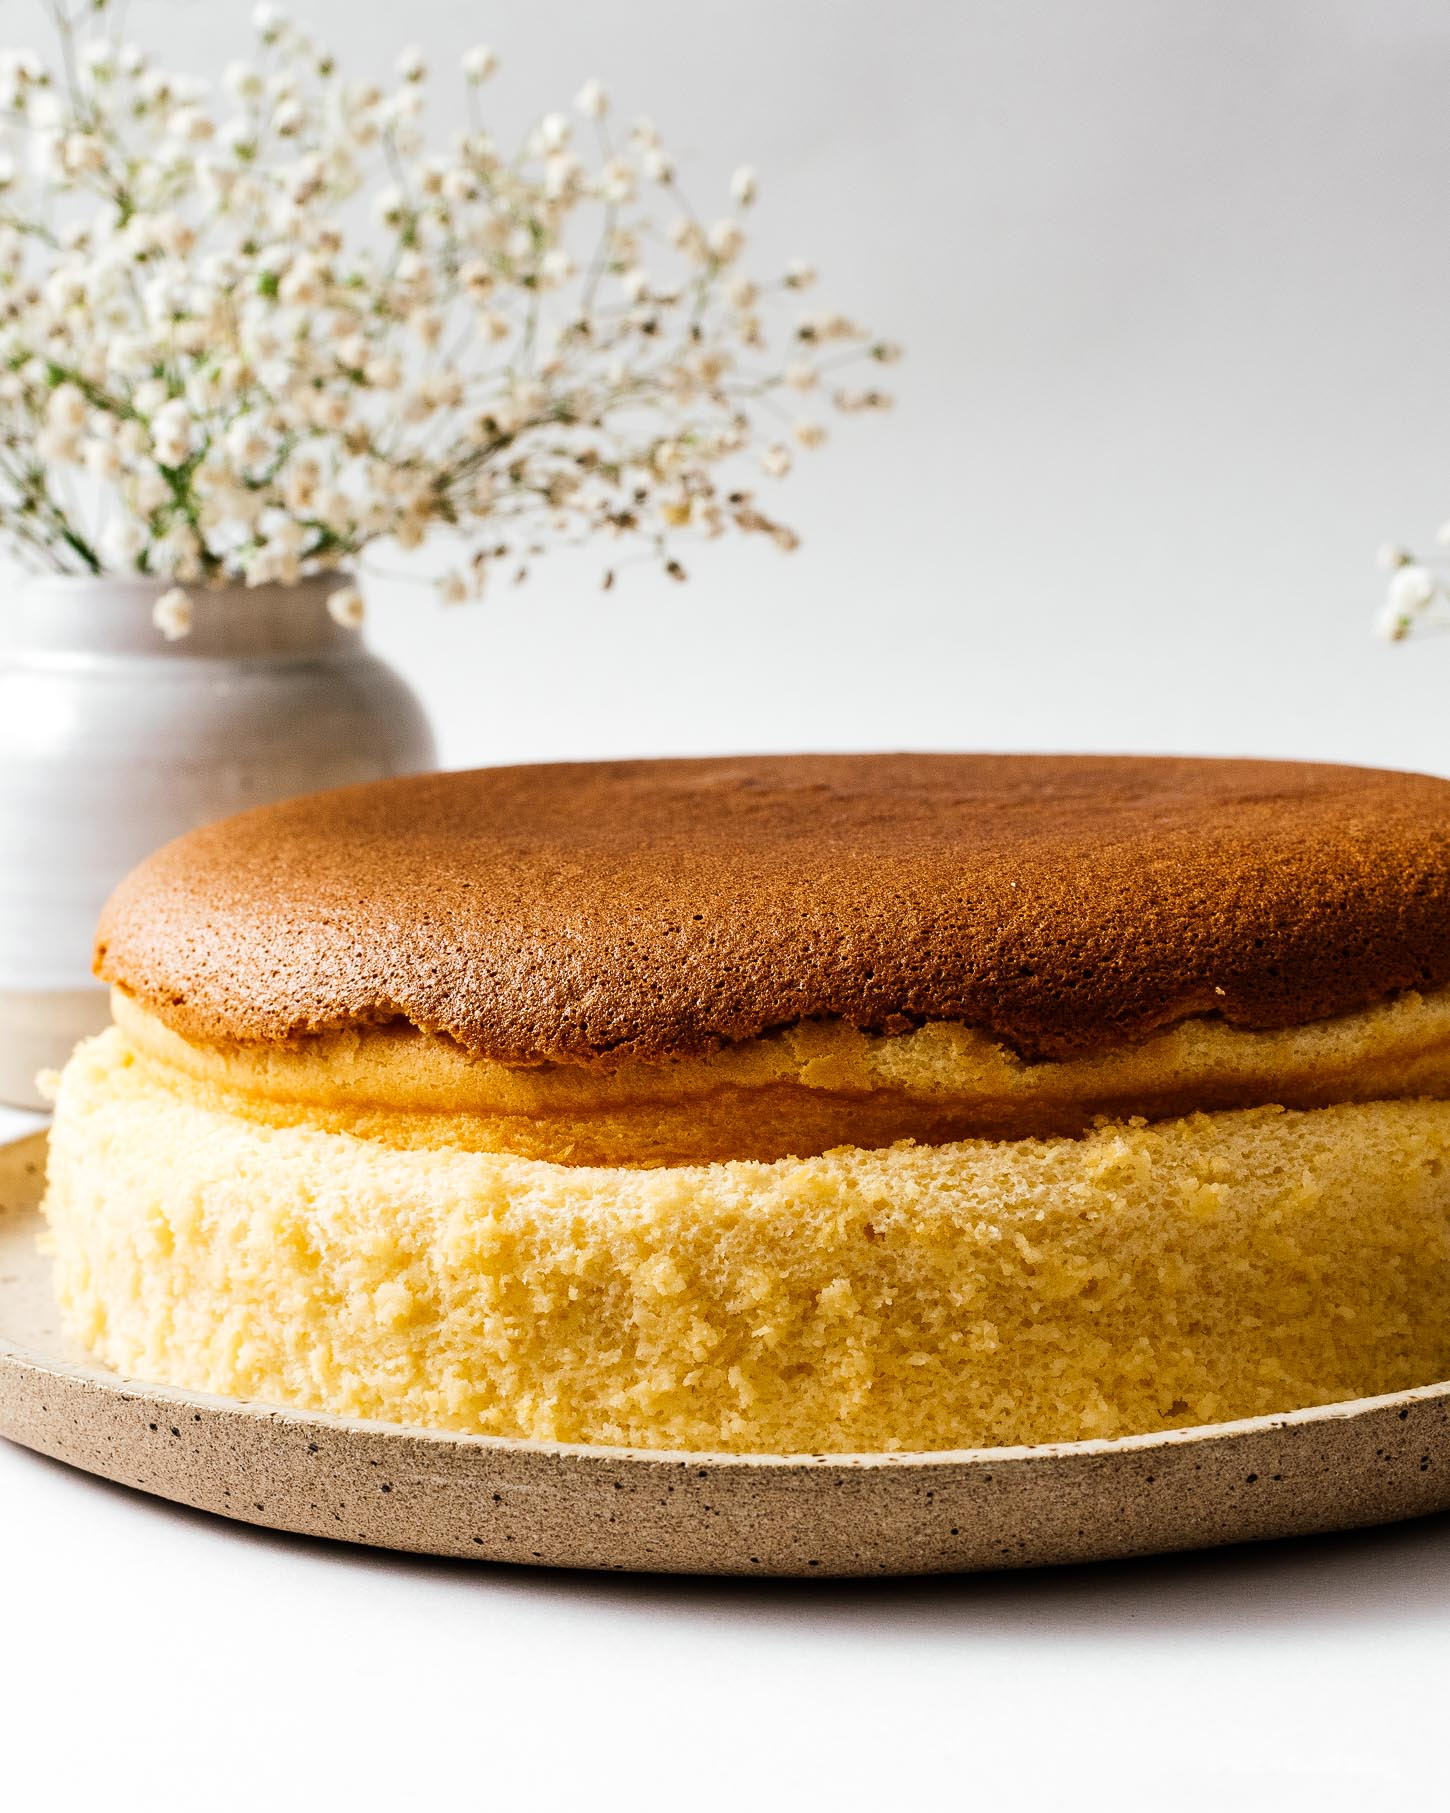 Japanese cotton cheesecake is the perfect combination of sponge cake, taste and texture-wise. With the pillowy soft cottony, light as air texture of soufflé, just the right sweetness, perfectly fluffy and jiggly with a hint of tart cream cheese. #cottoncheesecake #cottoncheesecakerecipe #japanesecheesecake #japanesecheesecakerecipe #cheesecake #cheesecakerecipe #recipes #jigglycheesecake